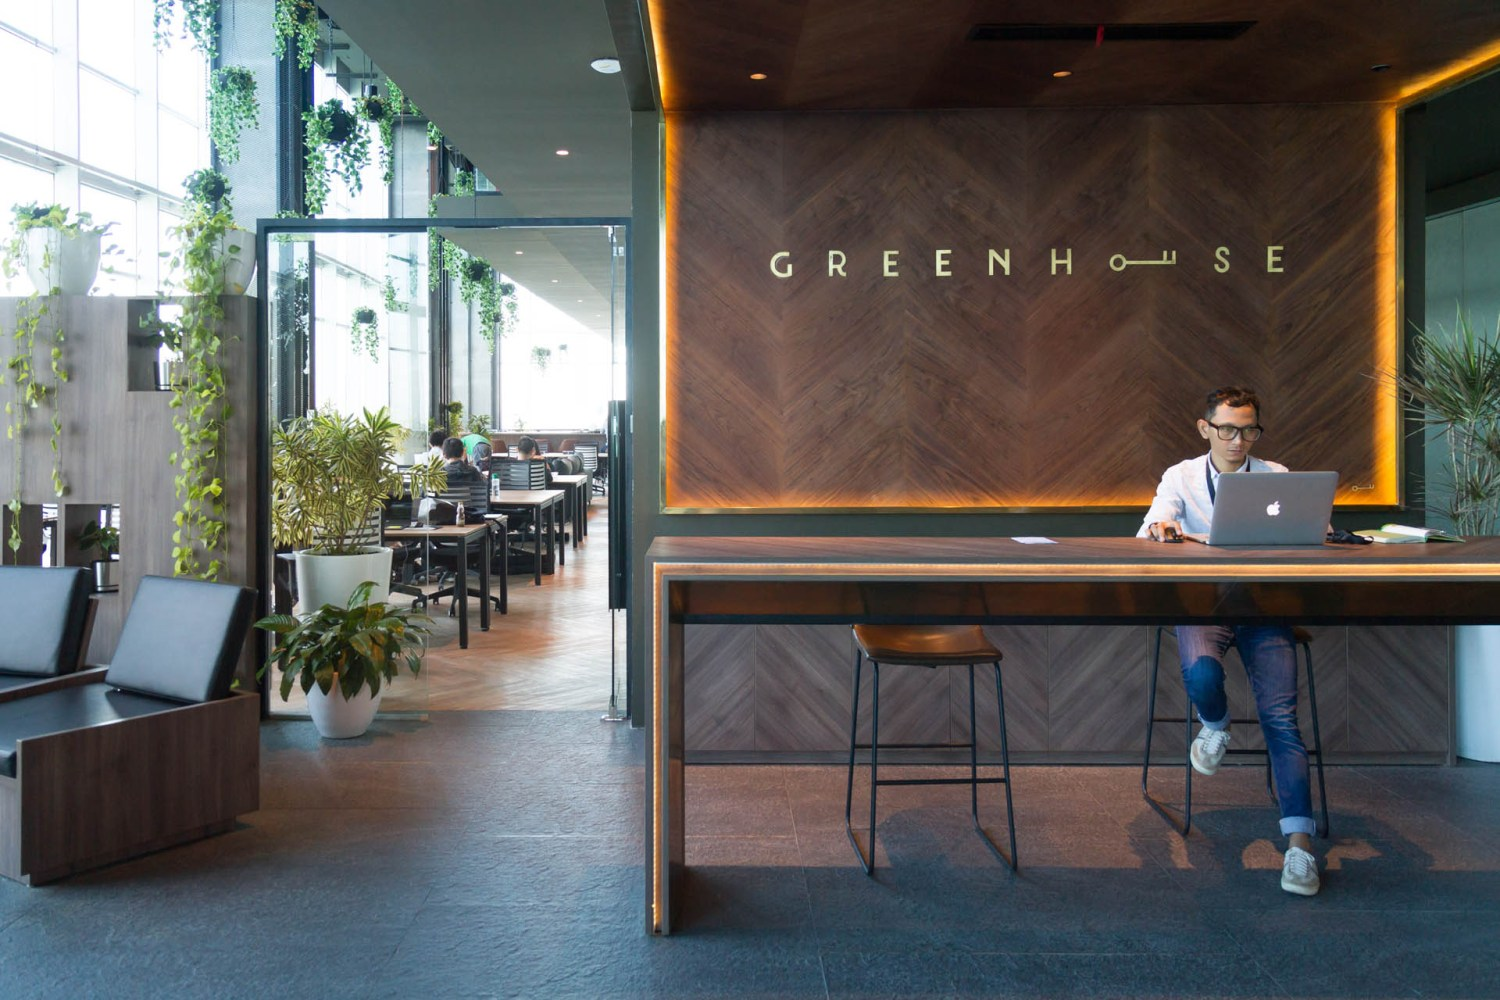 greenhouse-coworking-space-scaling-successfully-hospitality